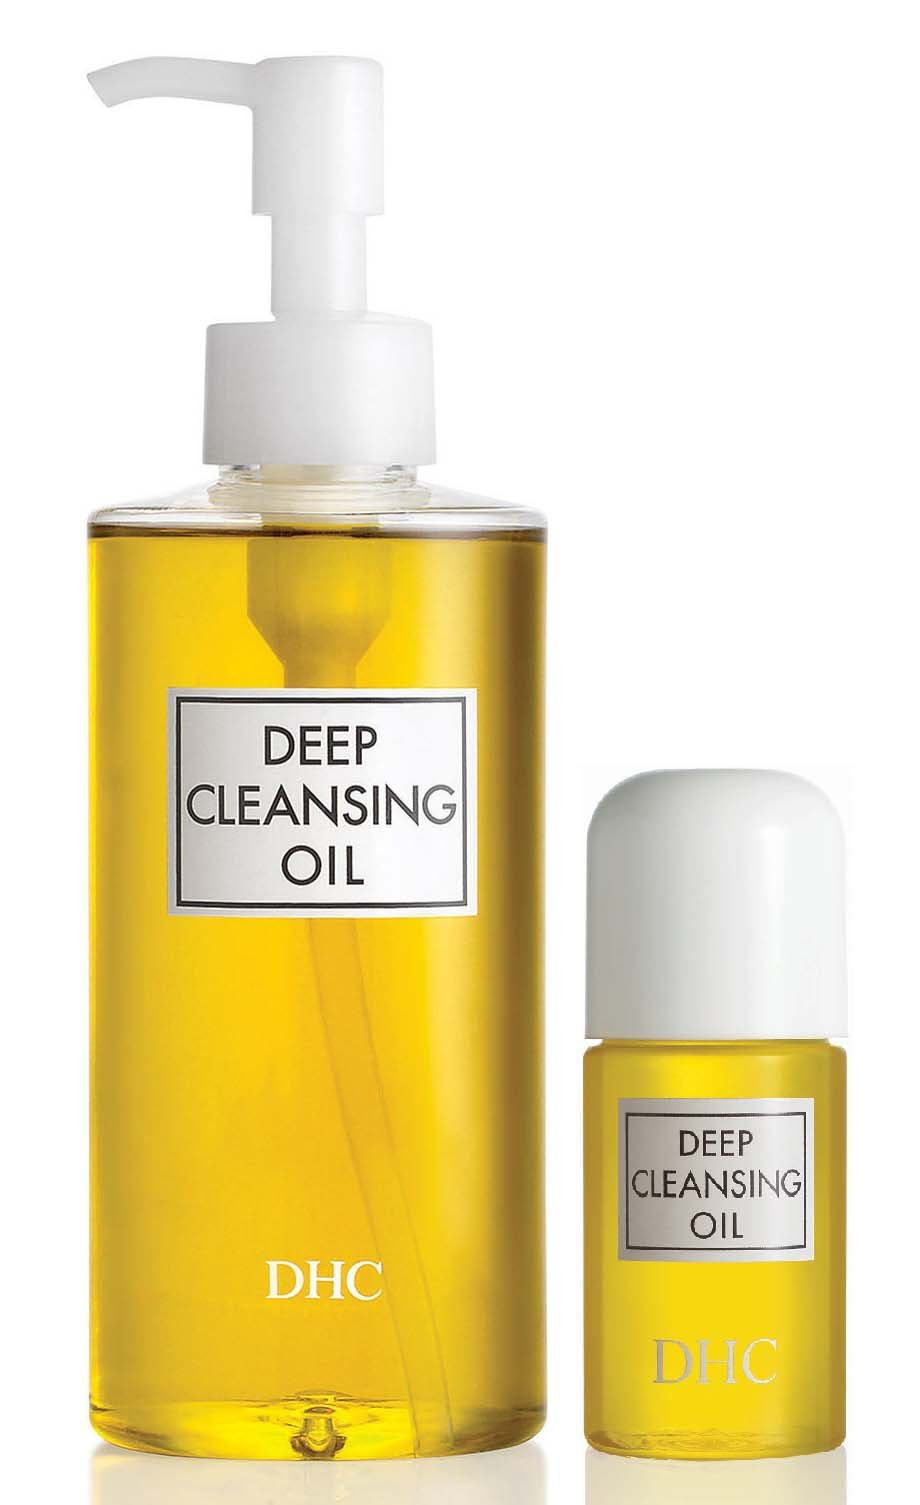 DHC Deep Cleansing Oil, 6.7 fl. oz & Deep Cleansing Oil Travel Size, 1 fl. oz. by DHC